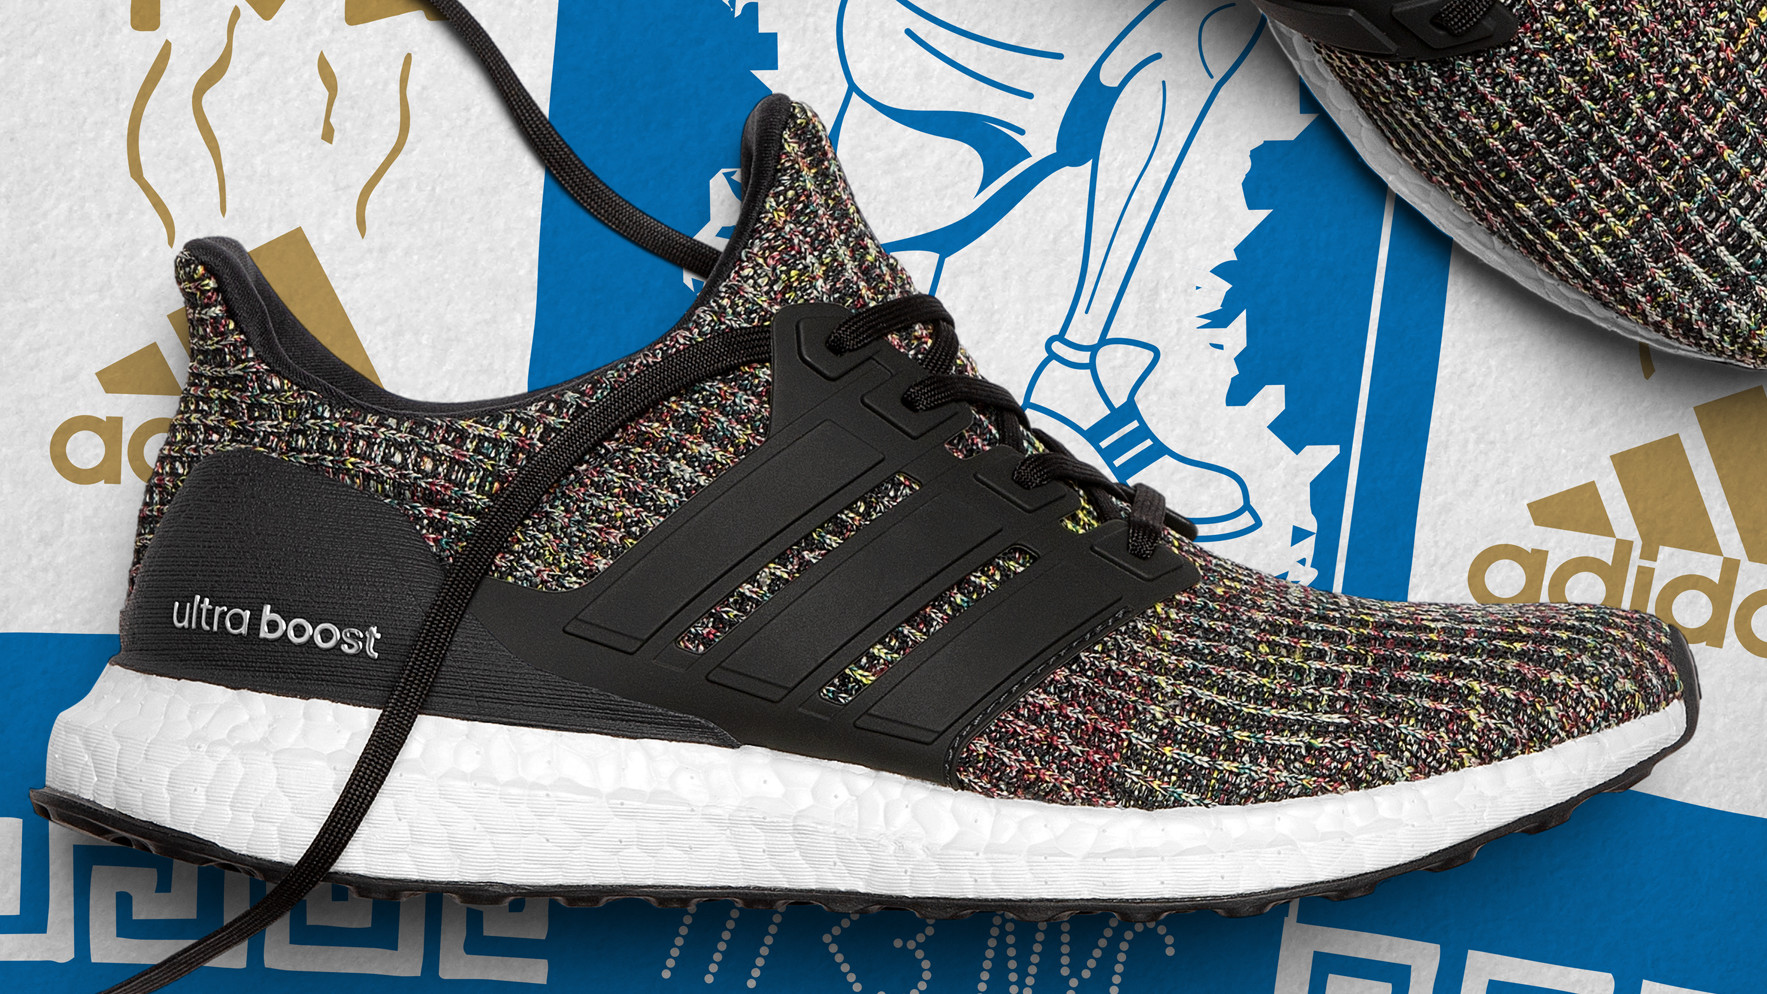 detailed look a6a85 b4bc8 Adidas Ultra Boost NY Pack Release Date  Sole Collector